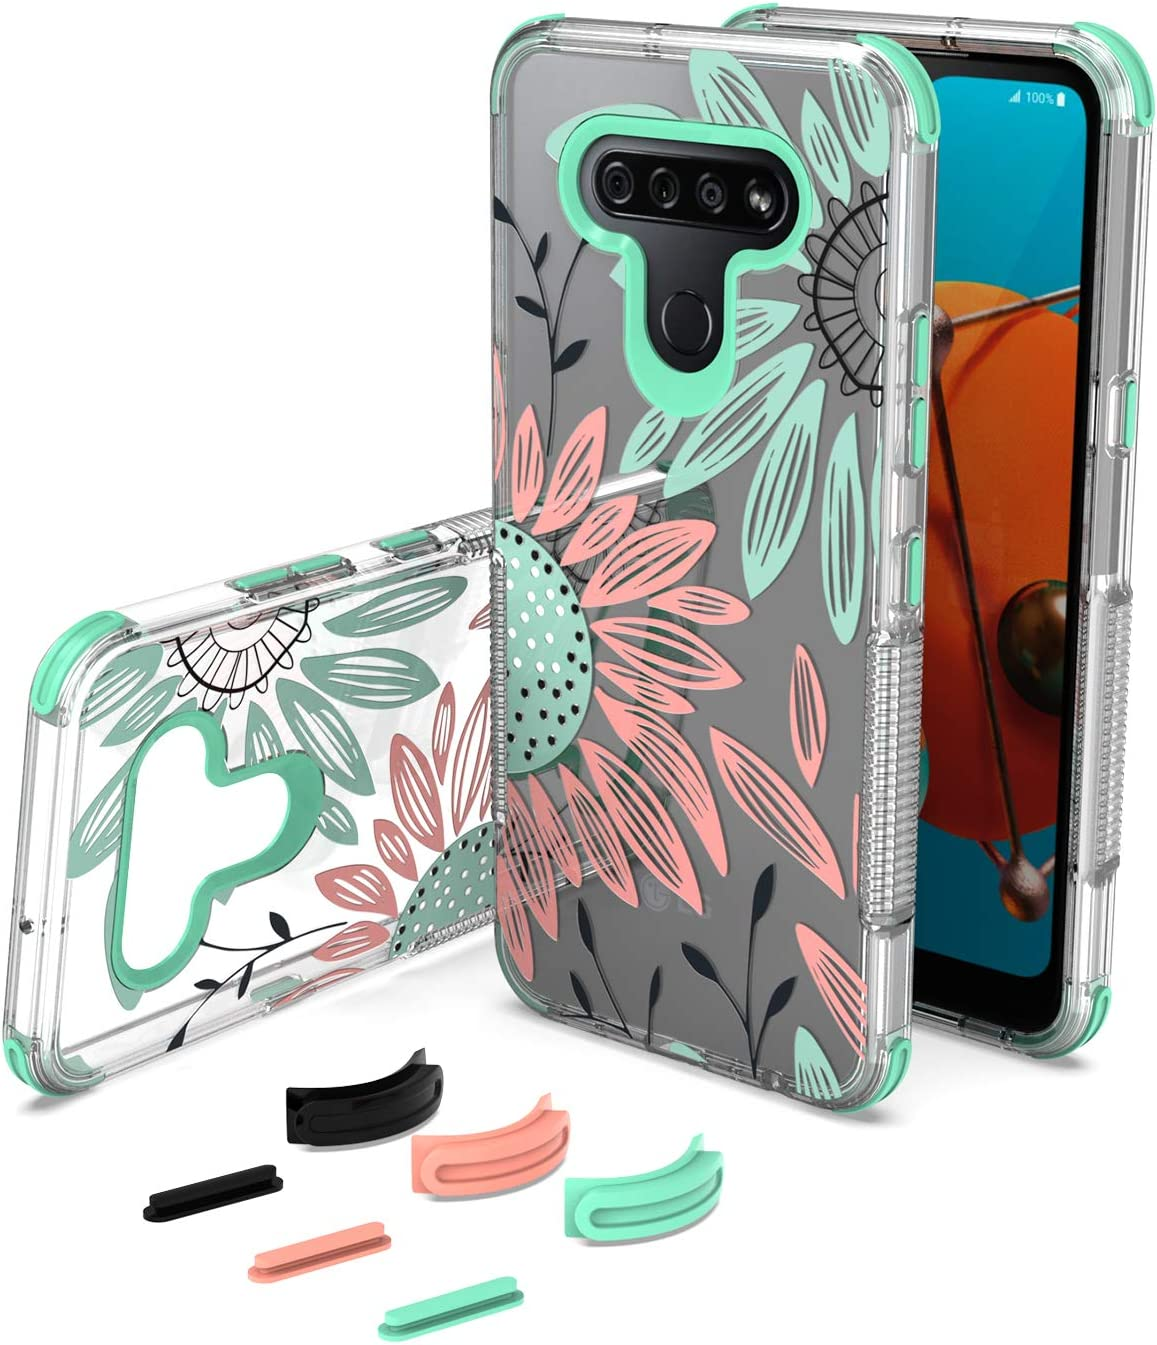 UNC Pro Cell Phone Case for LG Reflect Popular brand in the world K51 shop Q51 Replaceabl